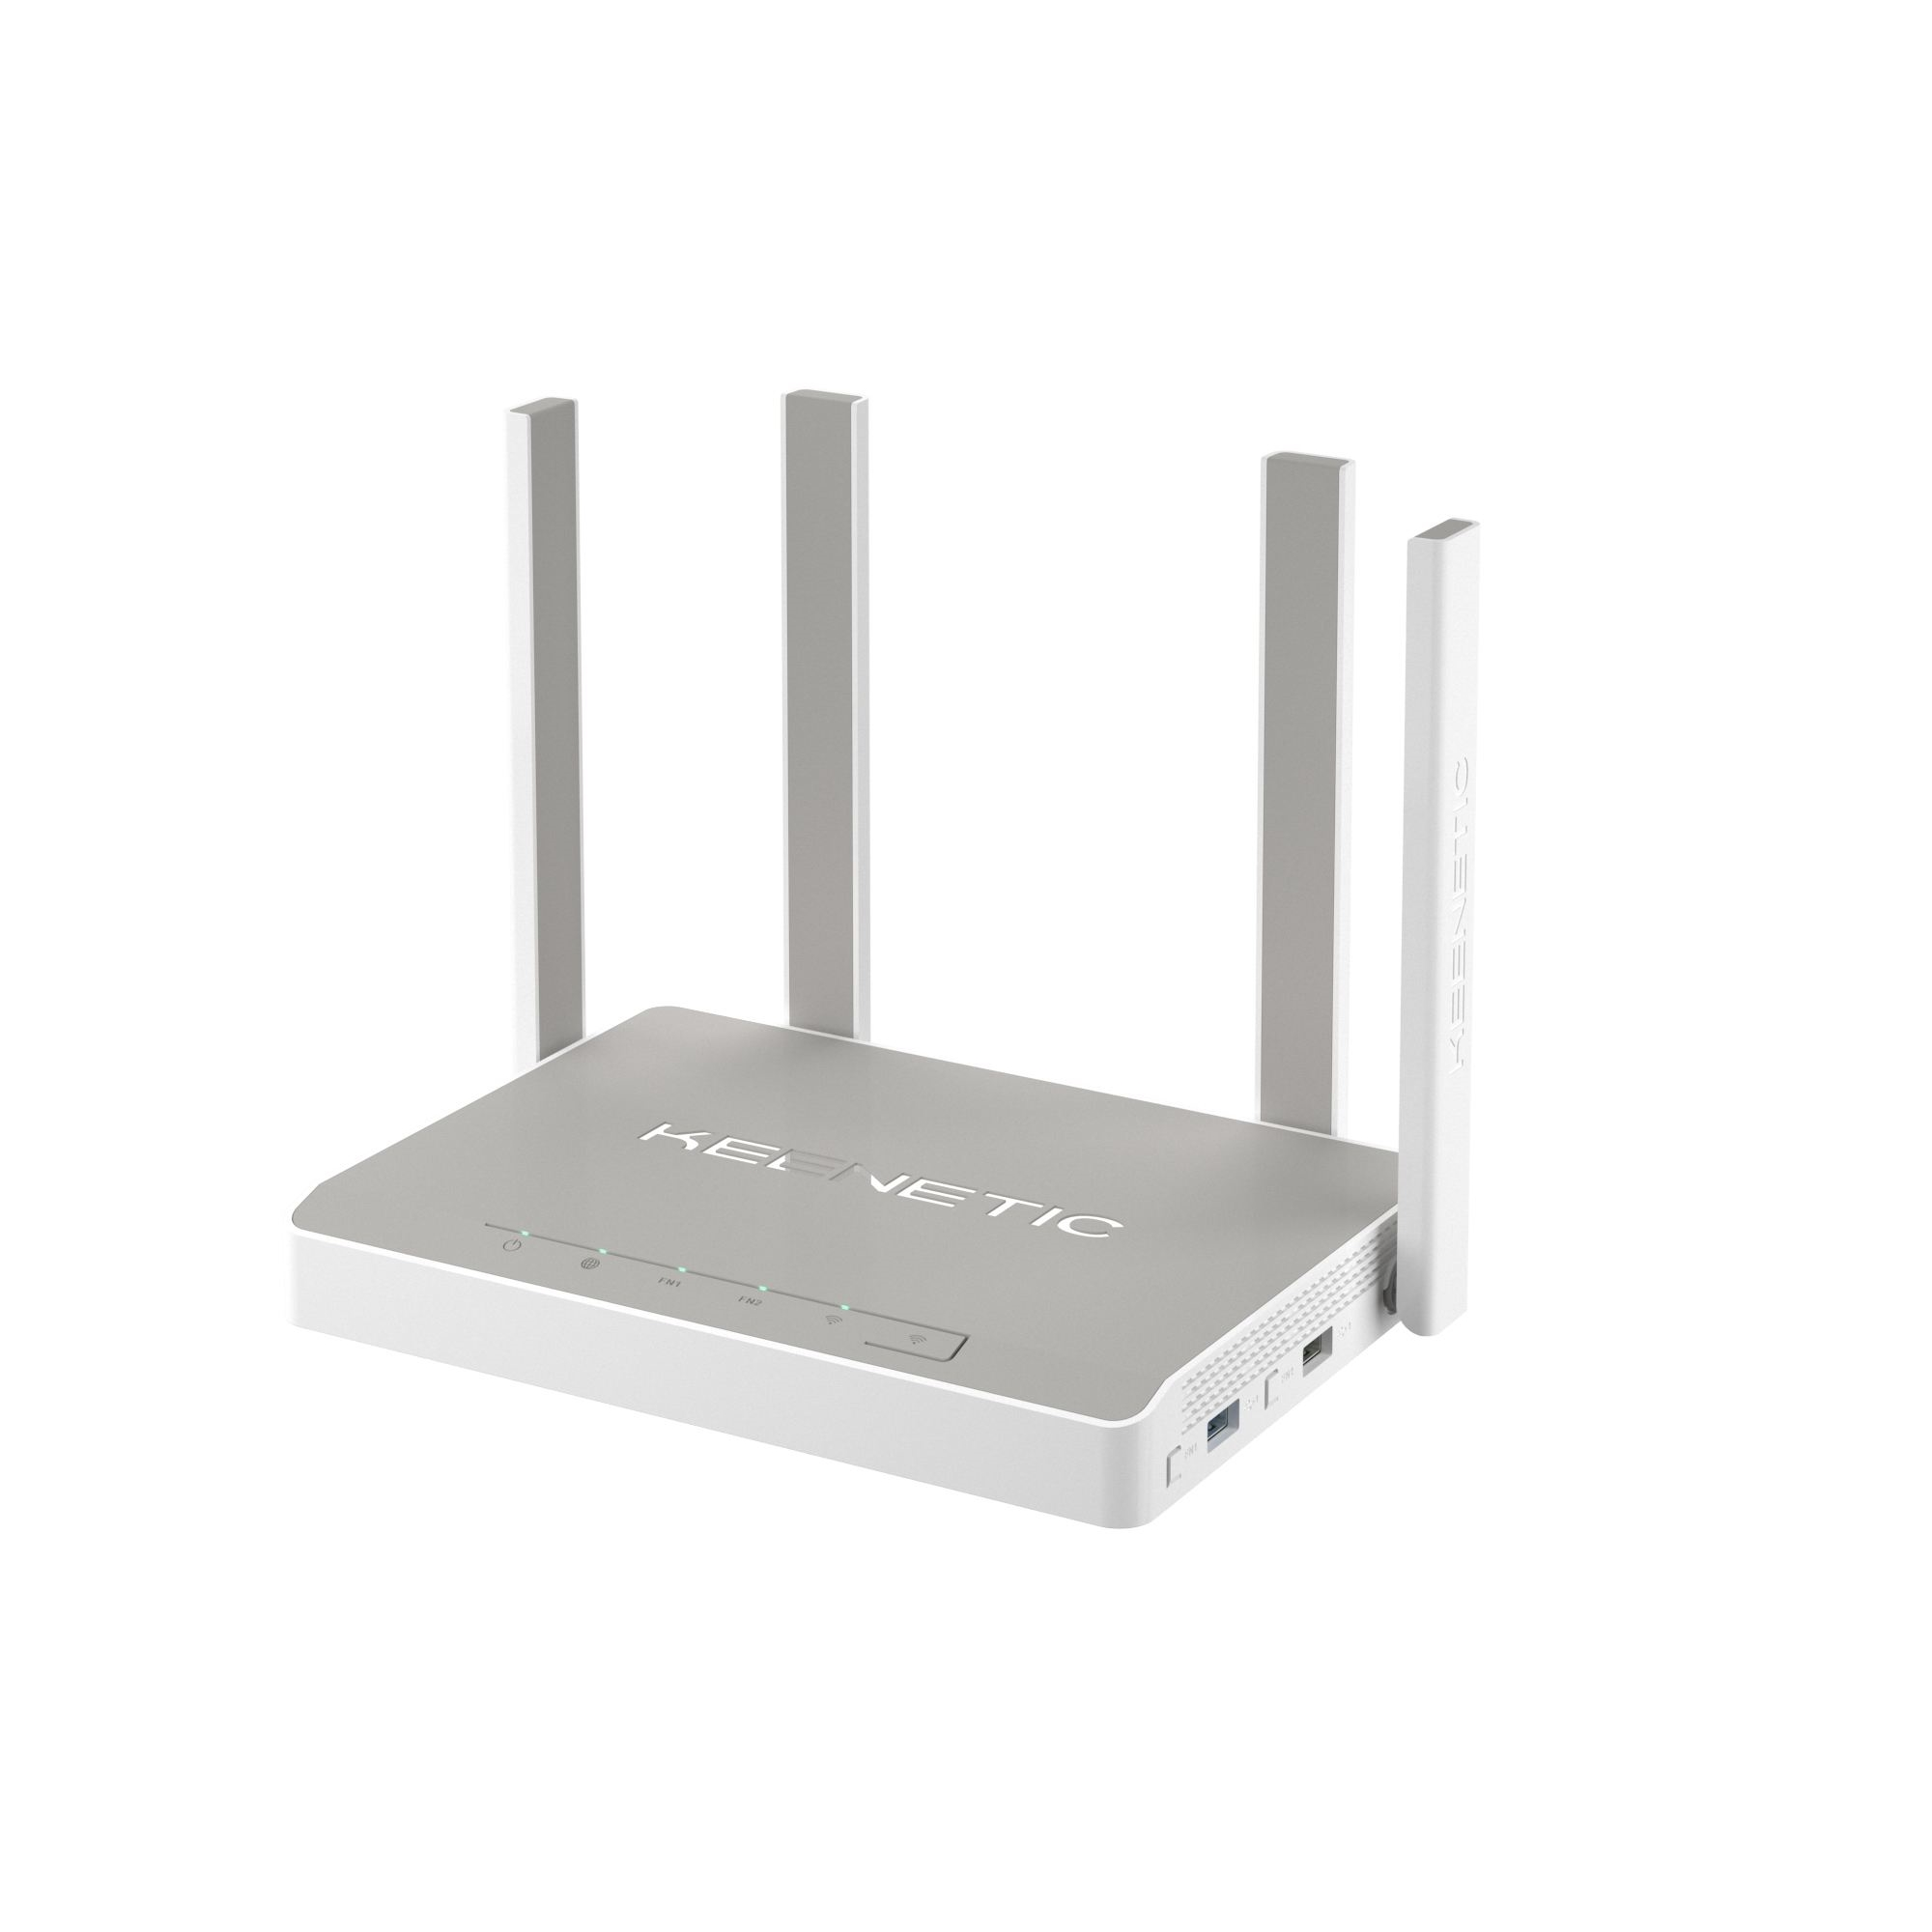 KEENETIC KN-1910-01TR VİVA AC1300 MBPS 5 PORT GE +1 SFP + 2USB 4 ANTEN 5DBI MESH ACCESS POINT/ROUTER/EXTENDER